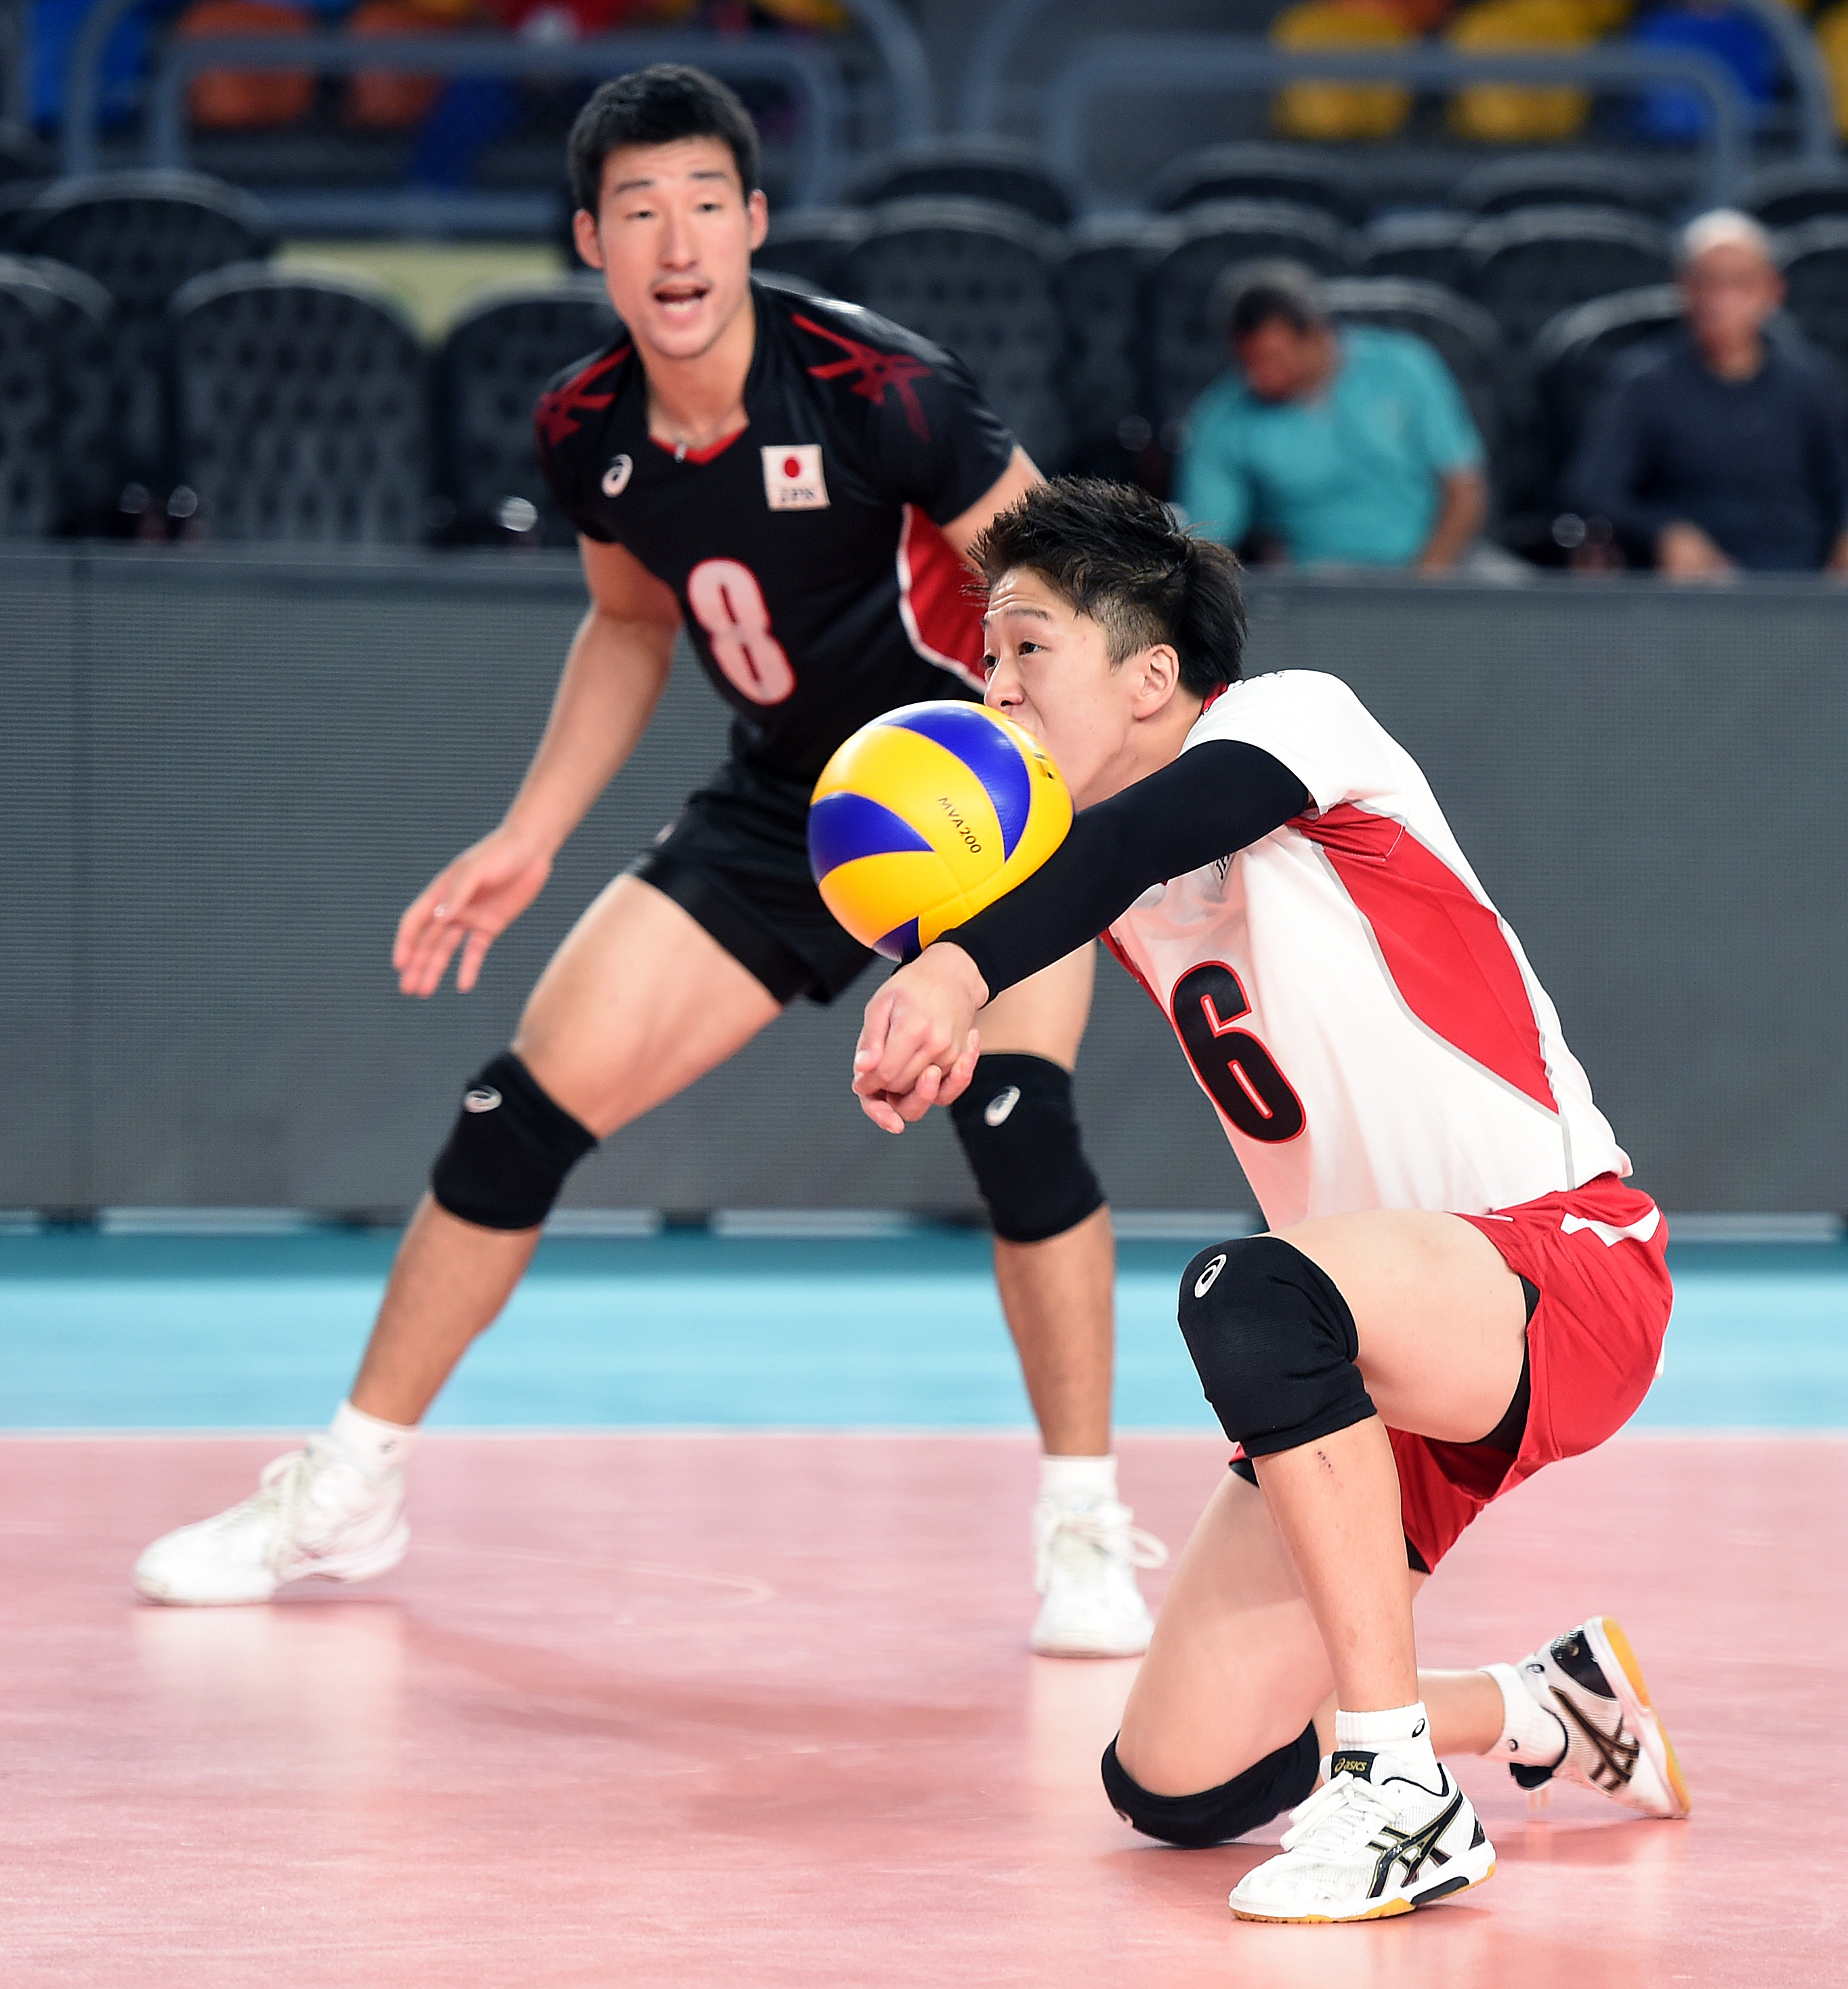 Overview Japan Fivb Volleyball Men S U23 World Championship 2017